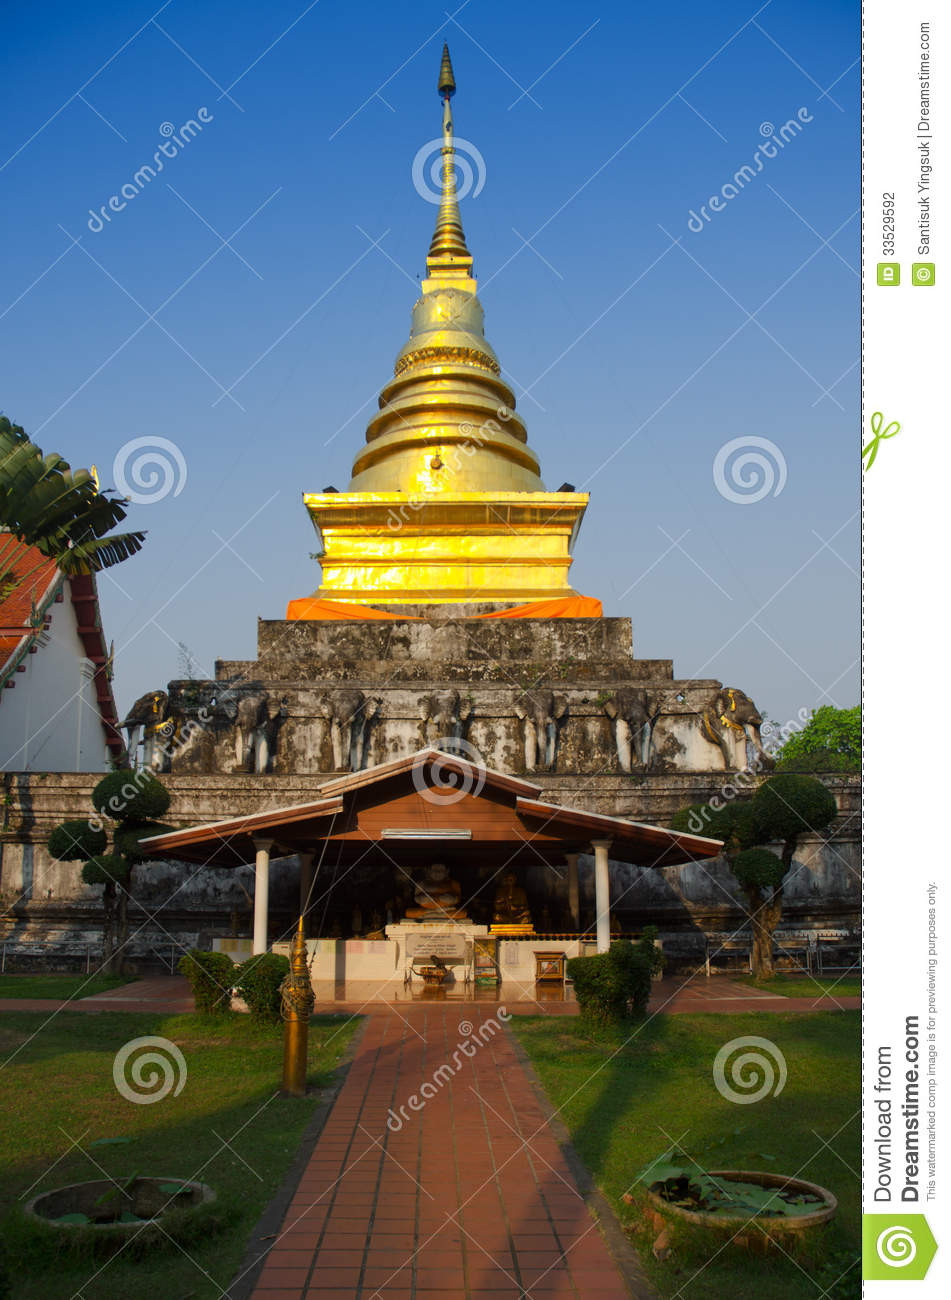 Nan Thailand  city photos gallery : Golden Pagoda at Nan Thailand.